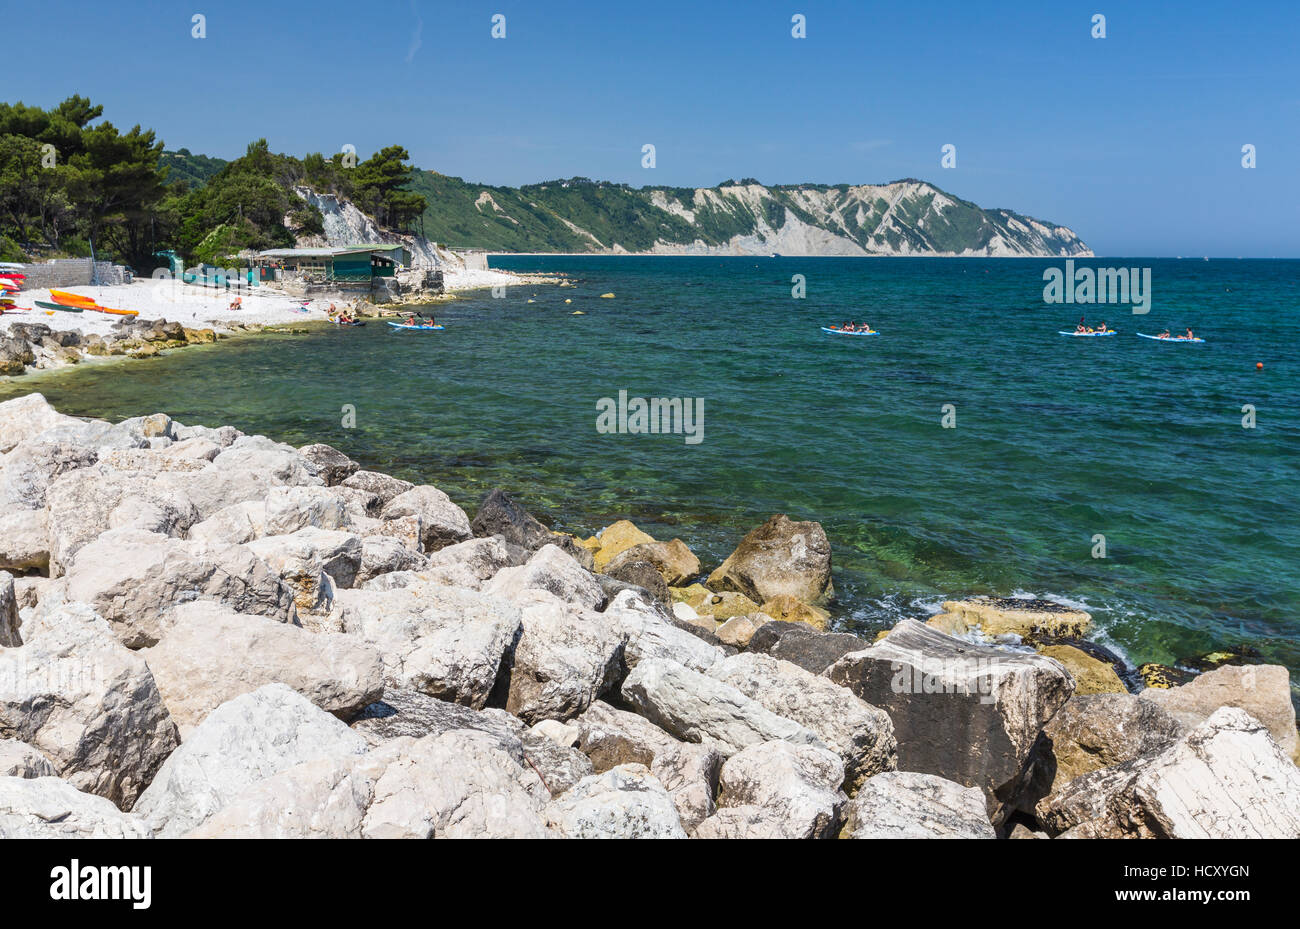 Canoe in the bay surrounded by the turquoise sea, Province of Ancona, Conero Riviera, Marche, Italy - Stock Image